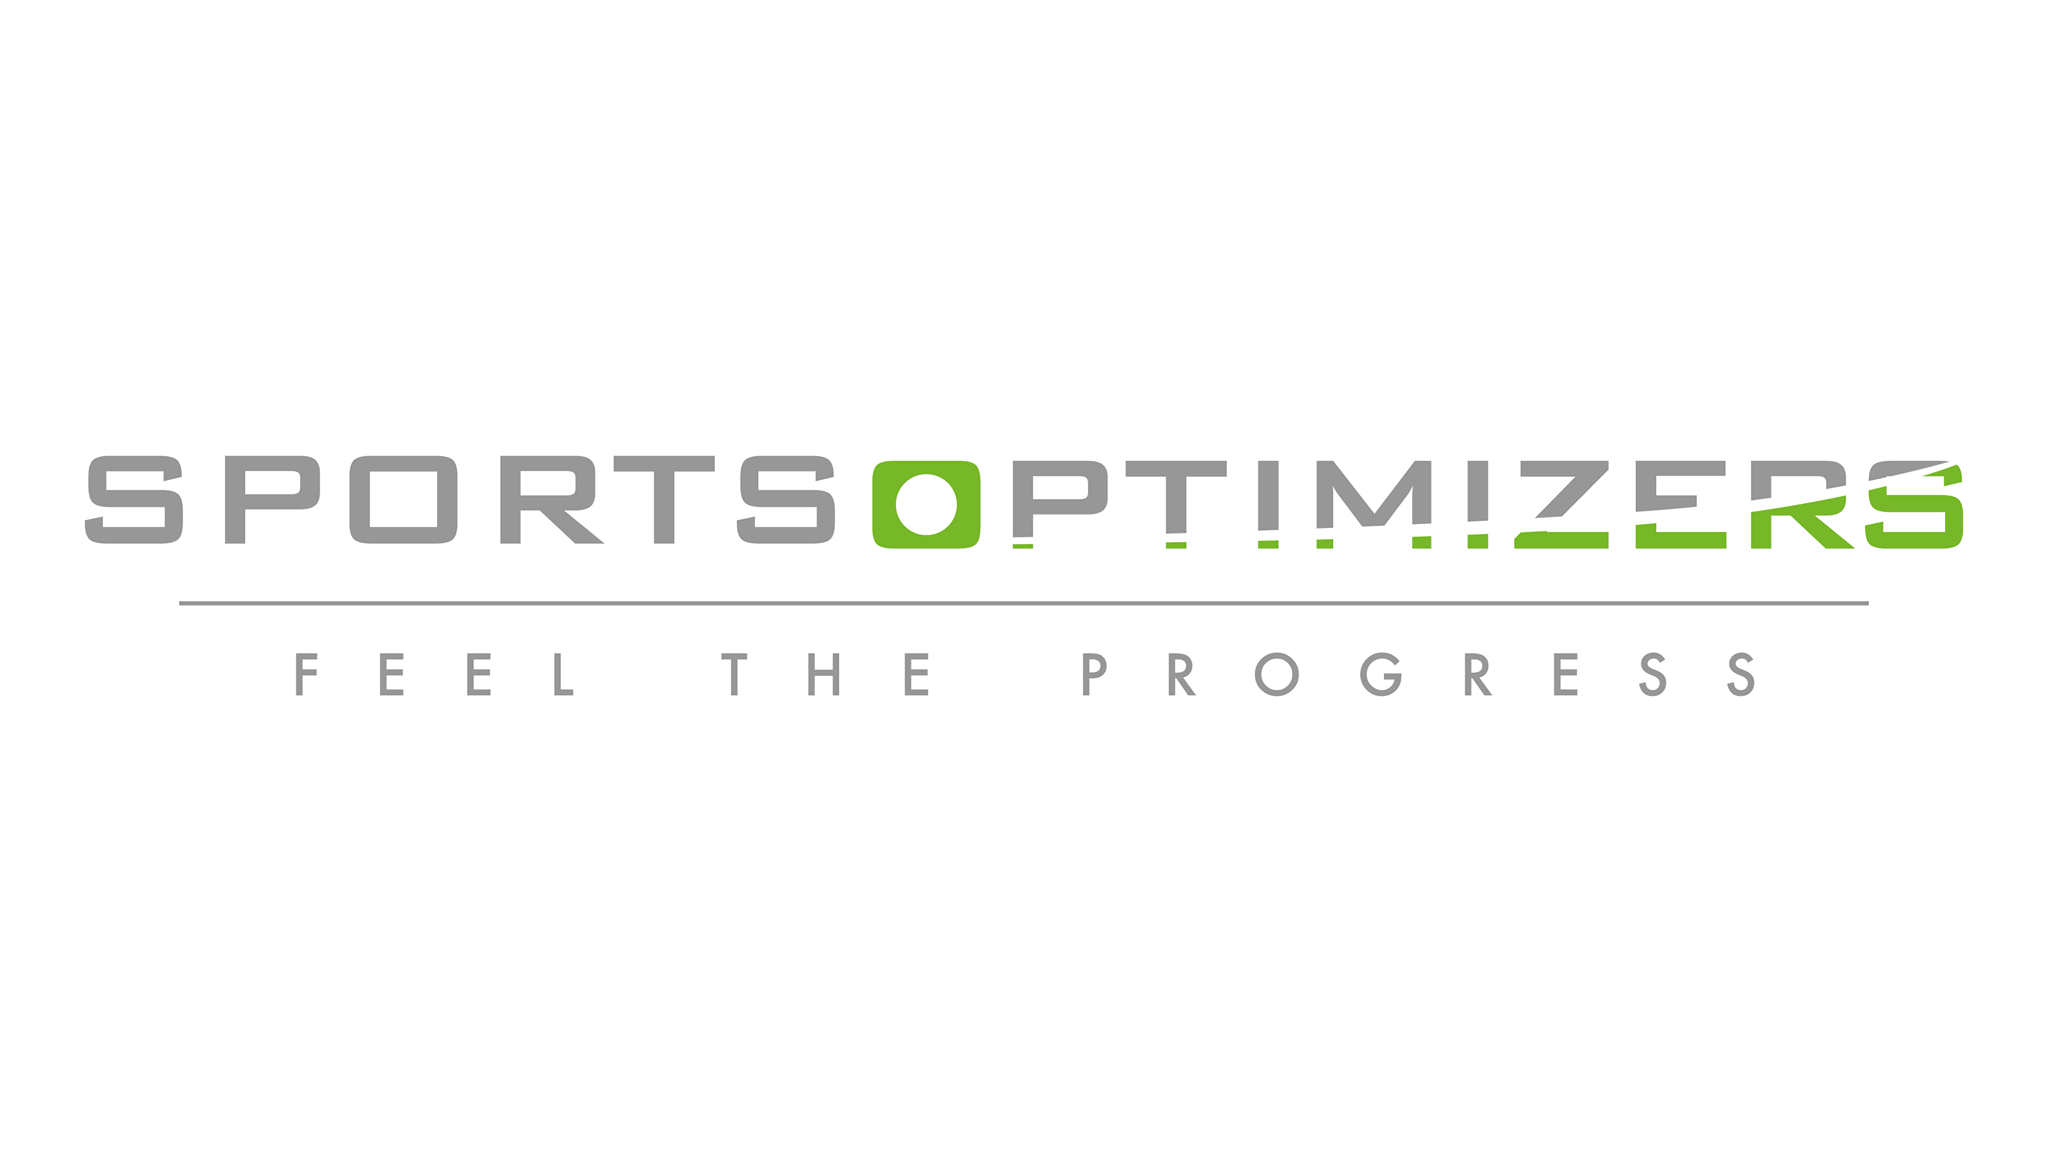 SPORTS OPTIMIZERS CB